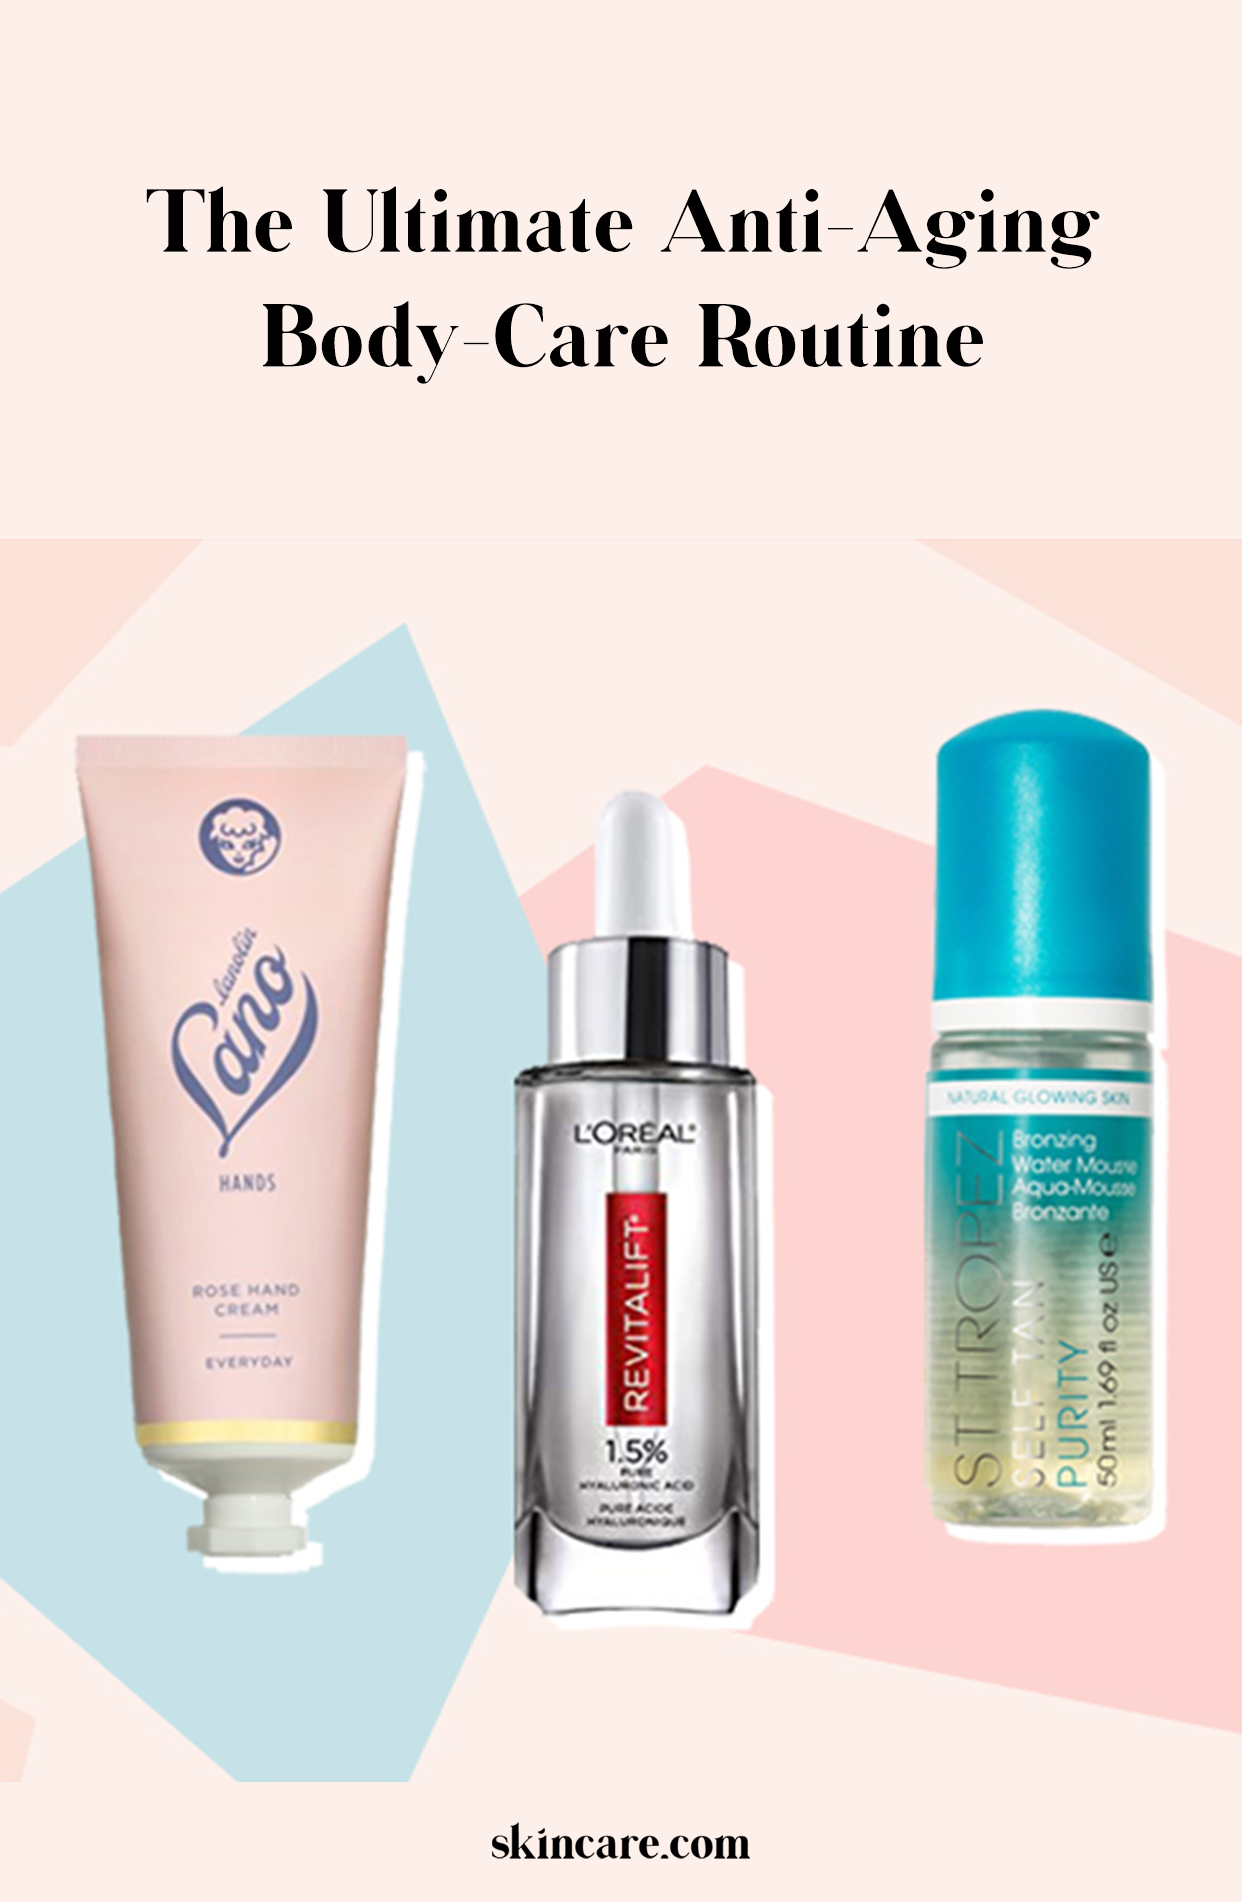 We put together the ultimate regimen for a skincare